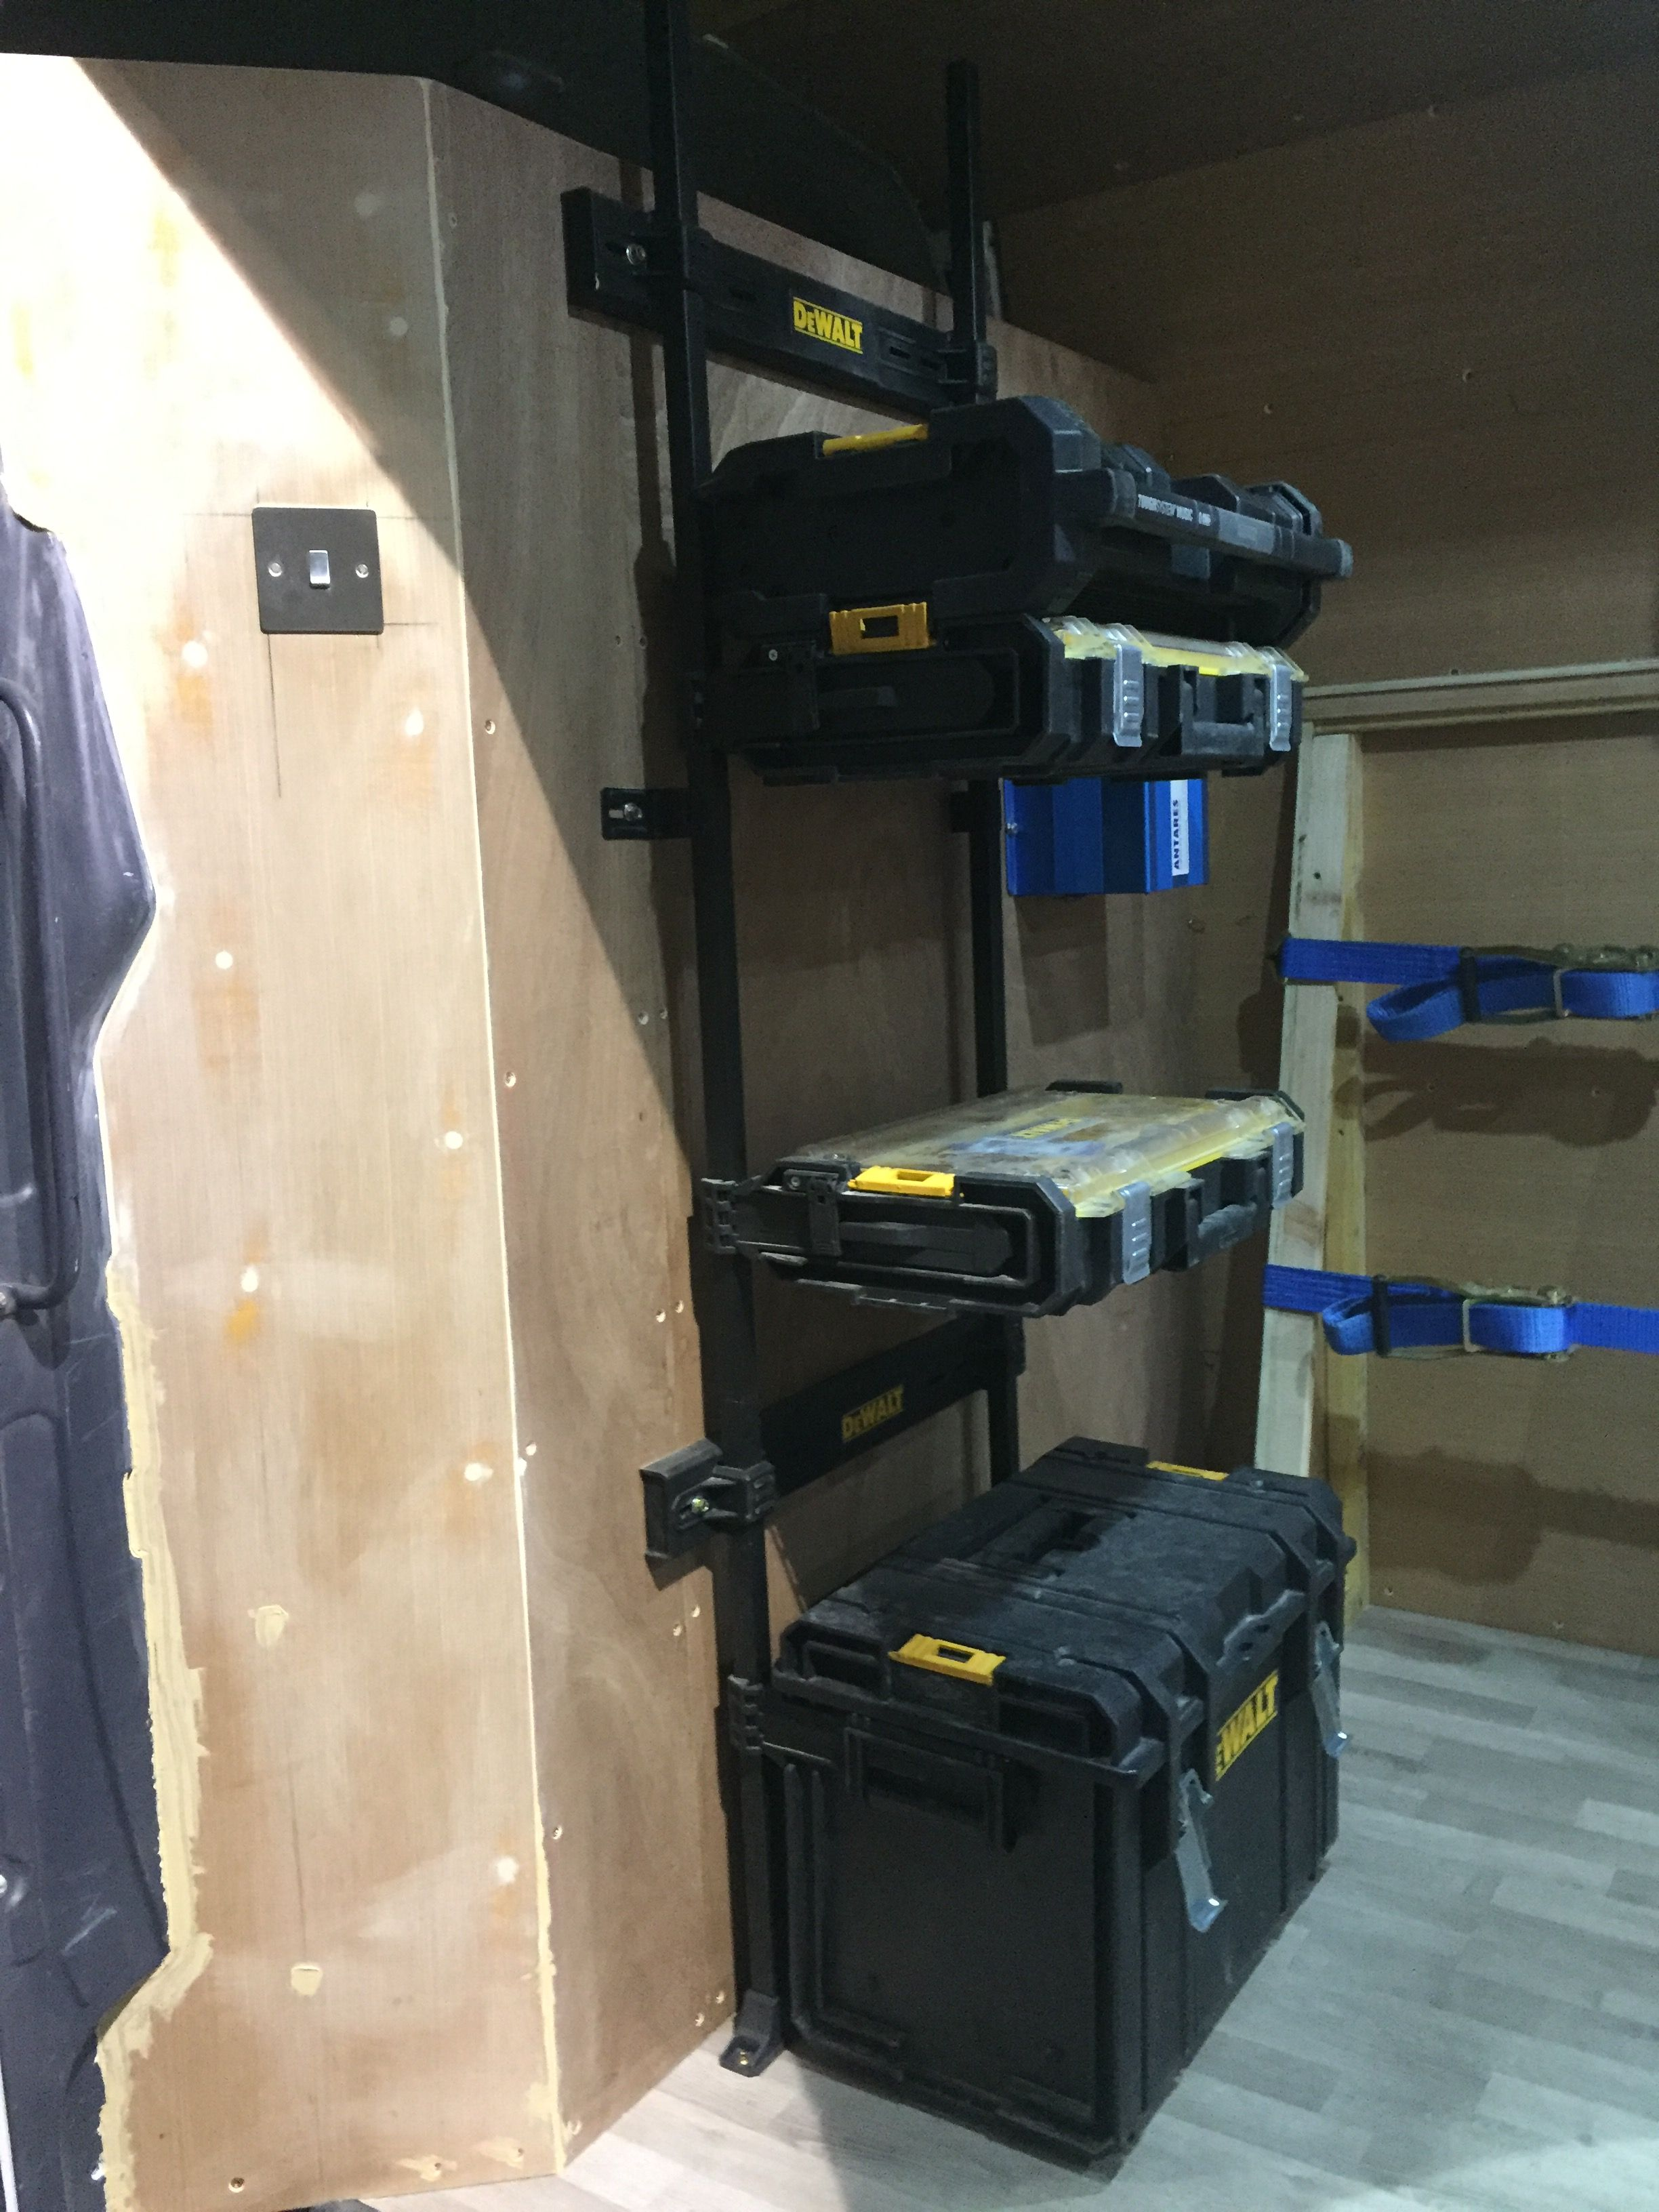 Pin by John Gallacher on Van racking (With images) | Work ...